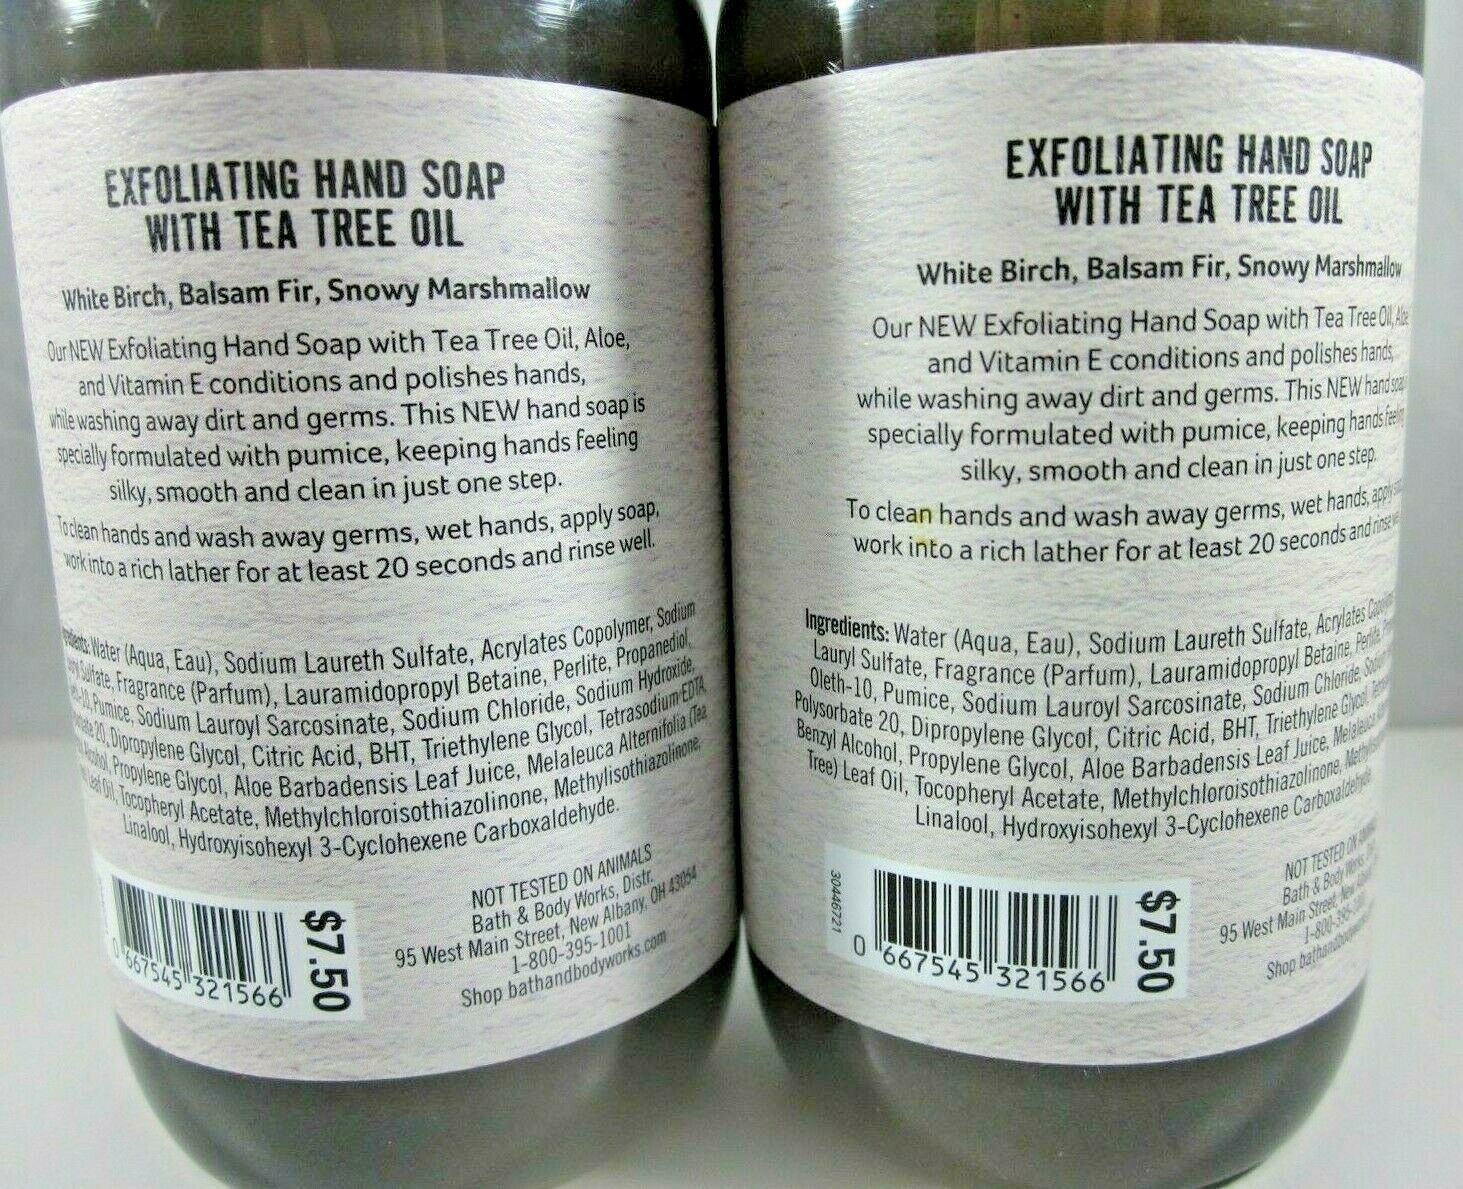 2 Bath & Body Works Exfoliating Hand Soap tea tree oil  Winter White Woods image 4